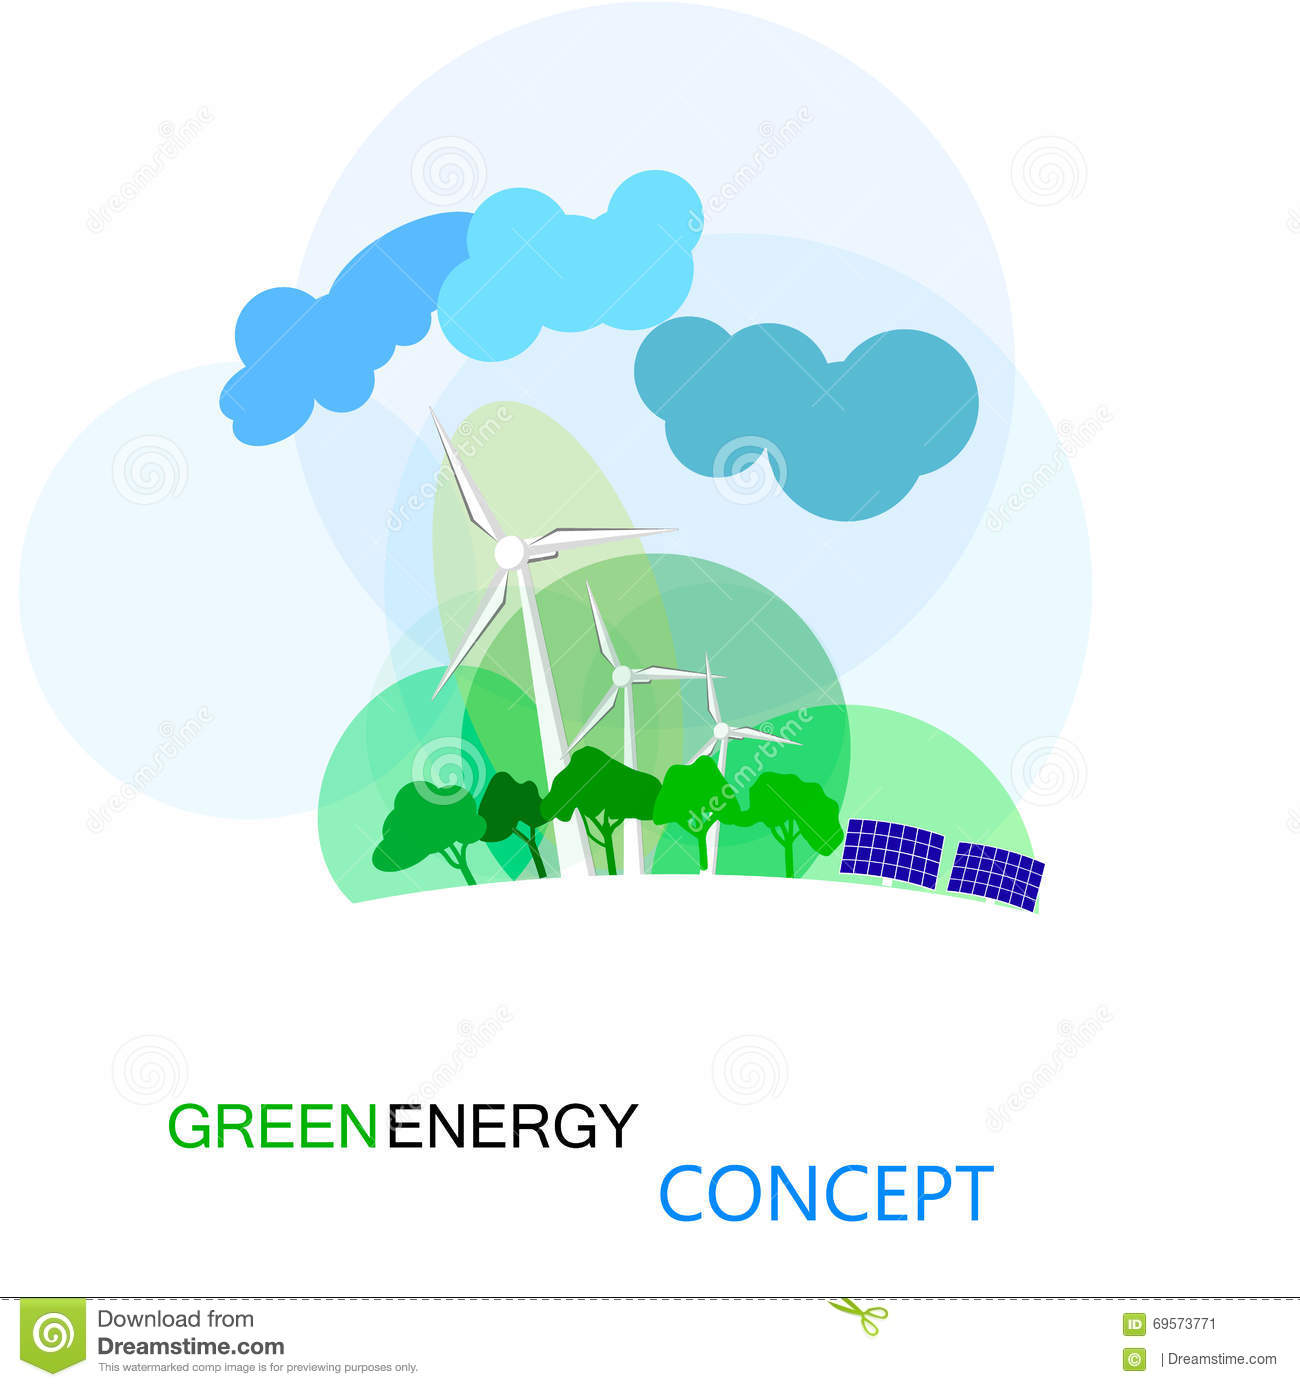 Green energy concept ecologycal future of earth wind turbines green energy concept ecologycal future of earth wind turbines ccuart Choice Image